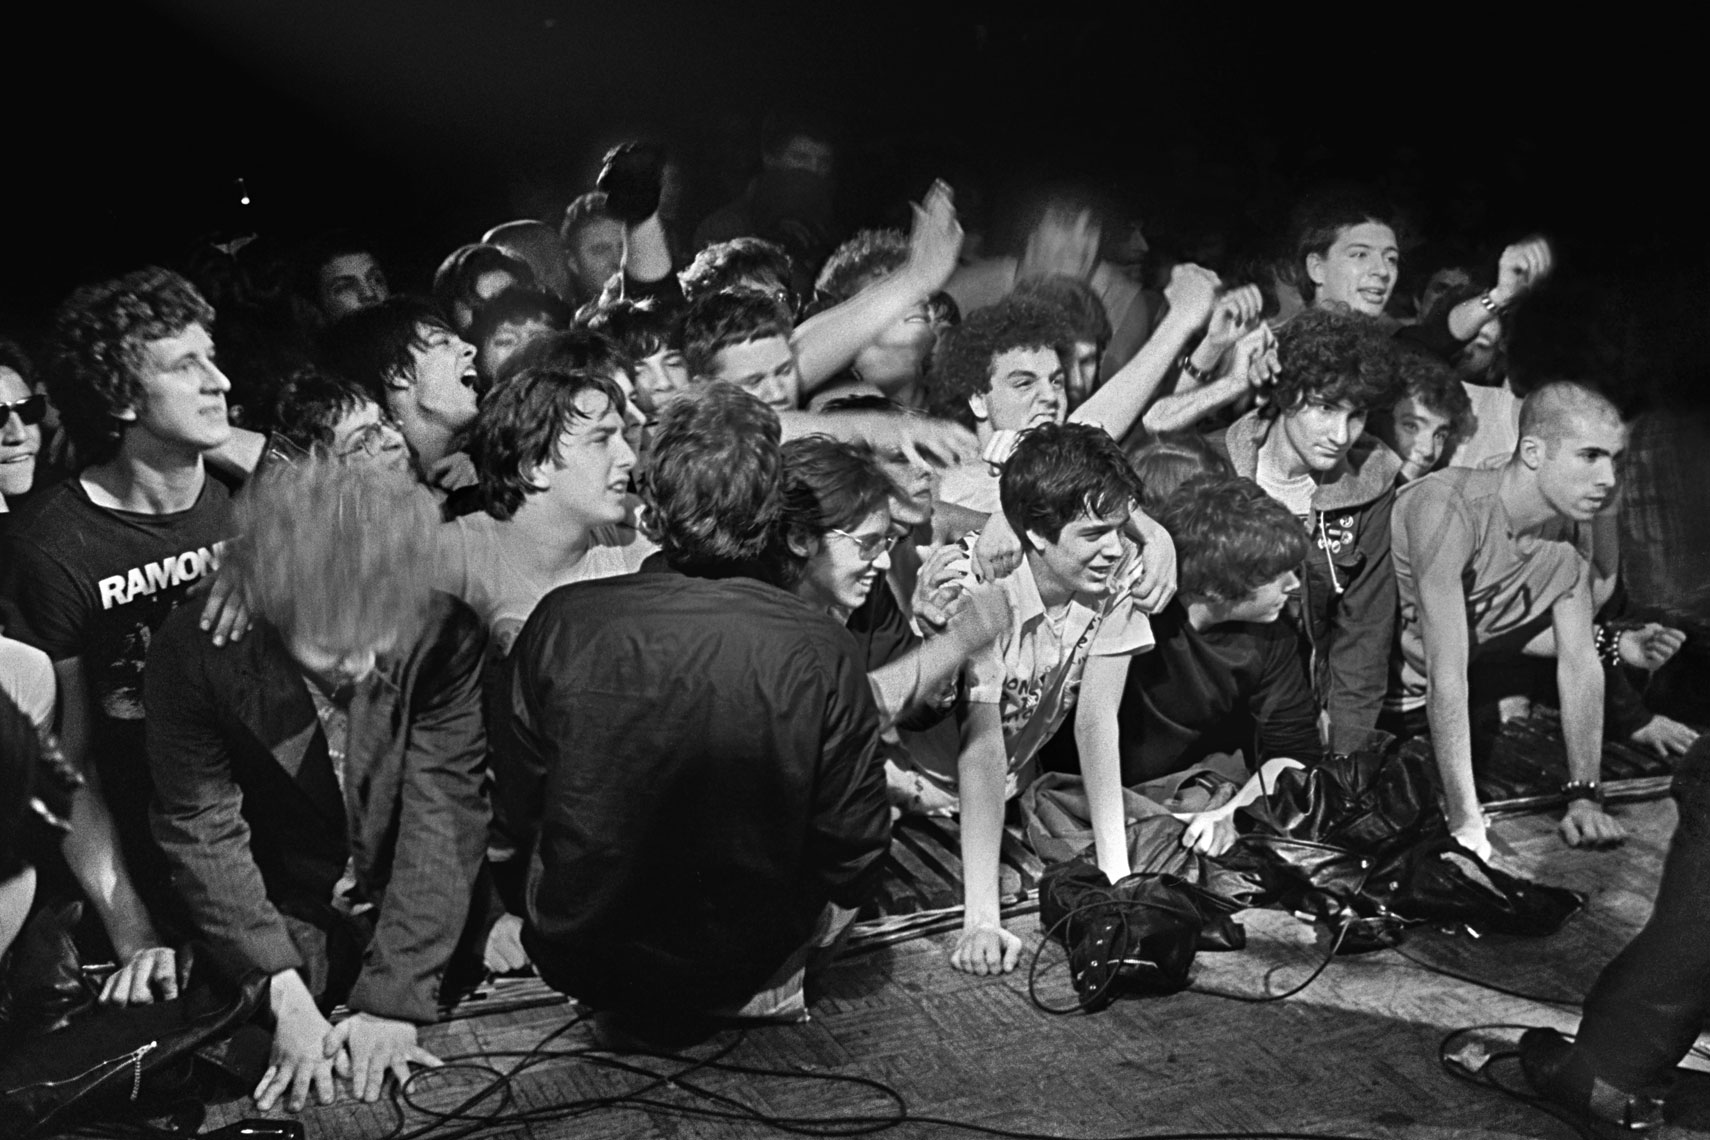 20_Dead-Kennedys-Crowd_Irving-Plaza_0581.jpg